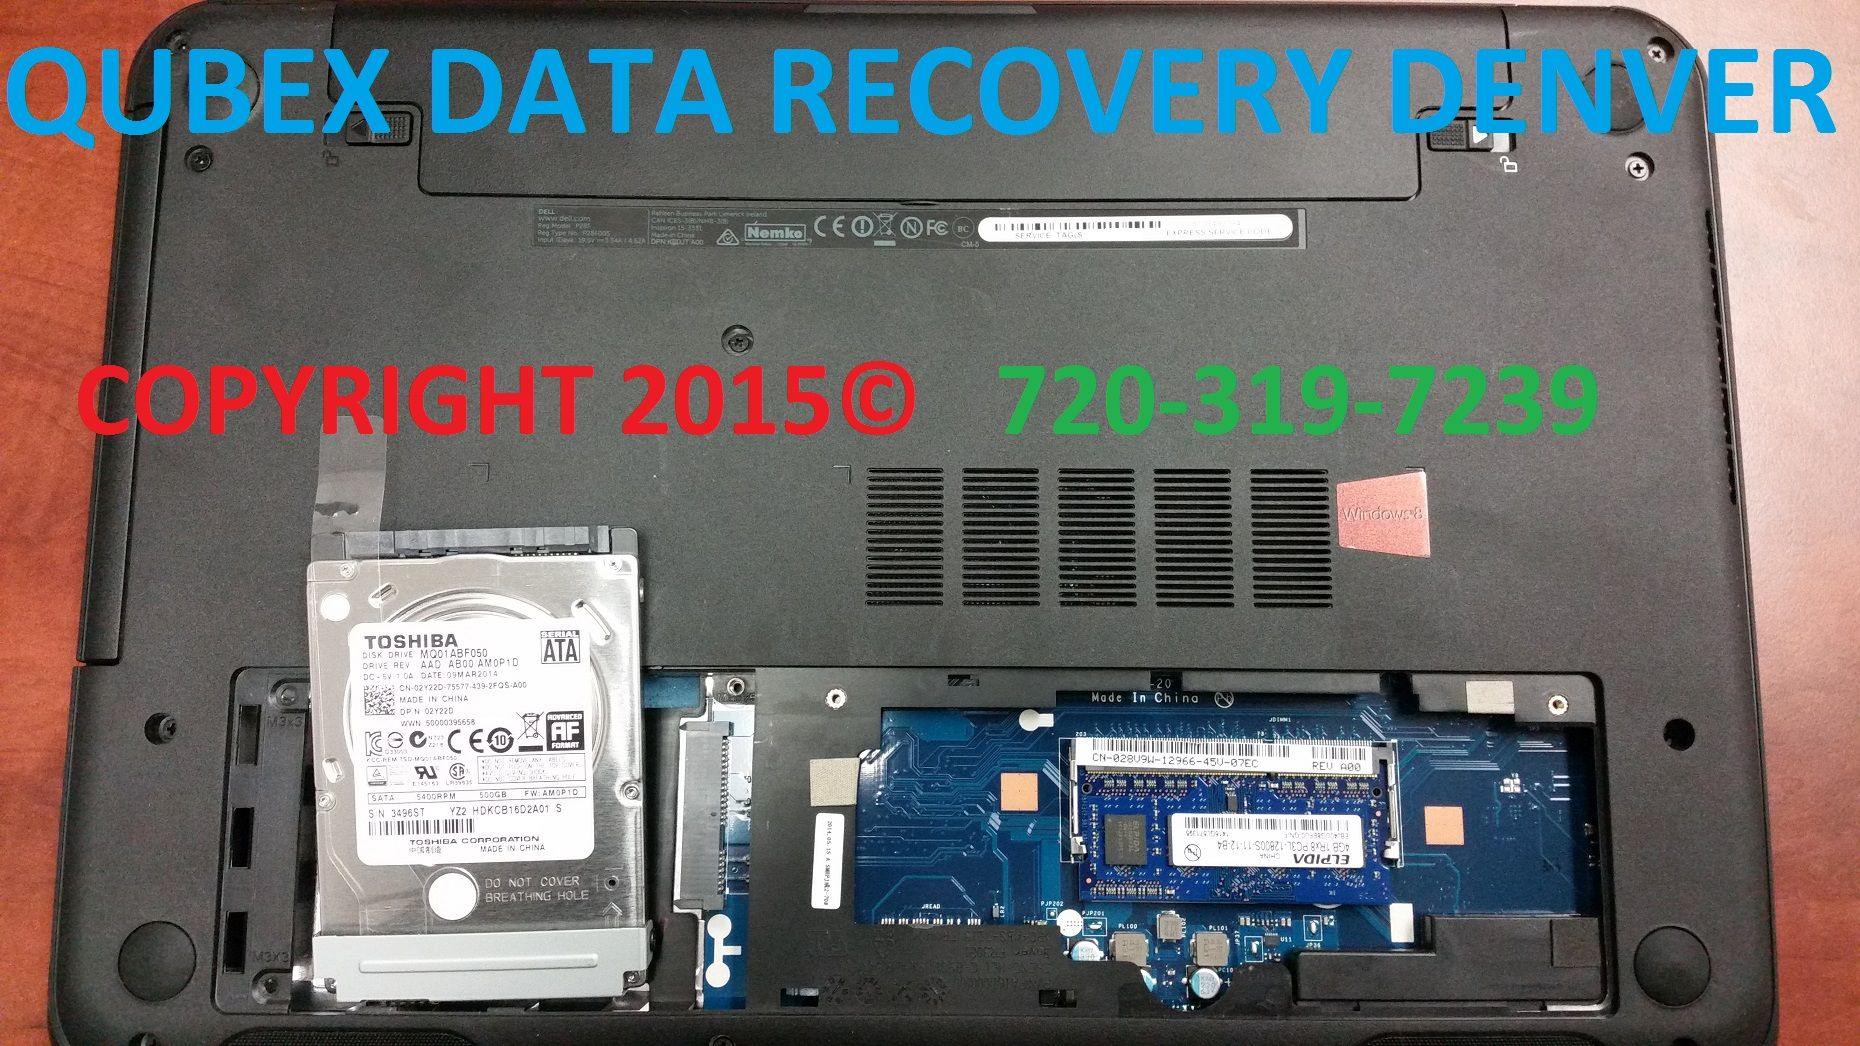 QUBEX DATA RETRIEVAL or DATA RECOVERY SERVICE SPECIALISTS